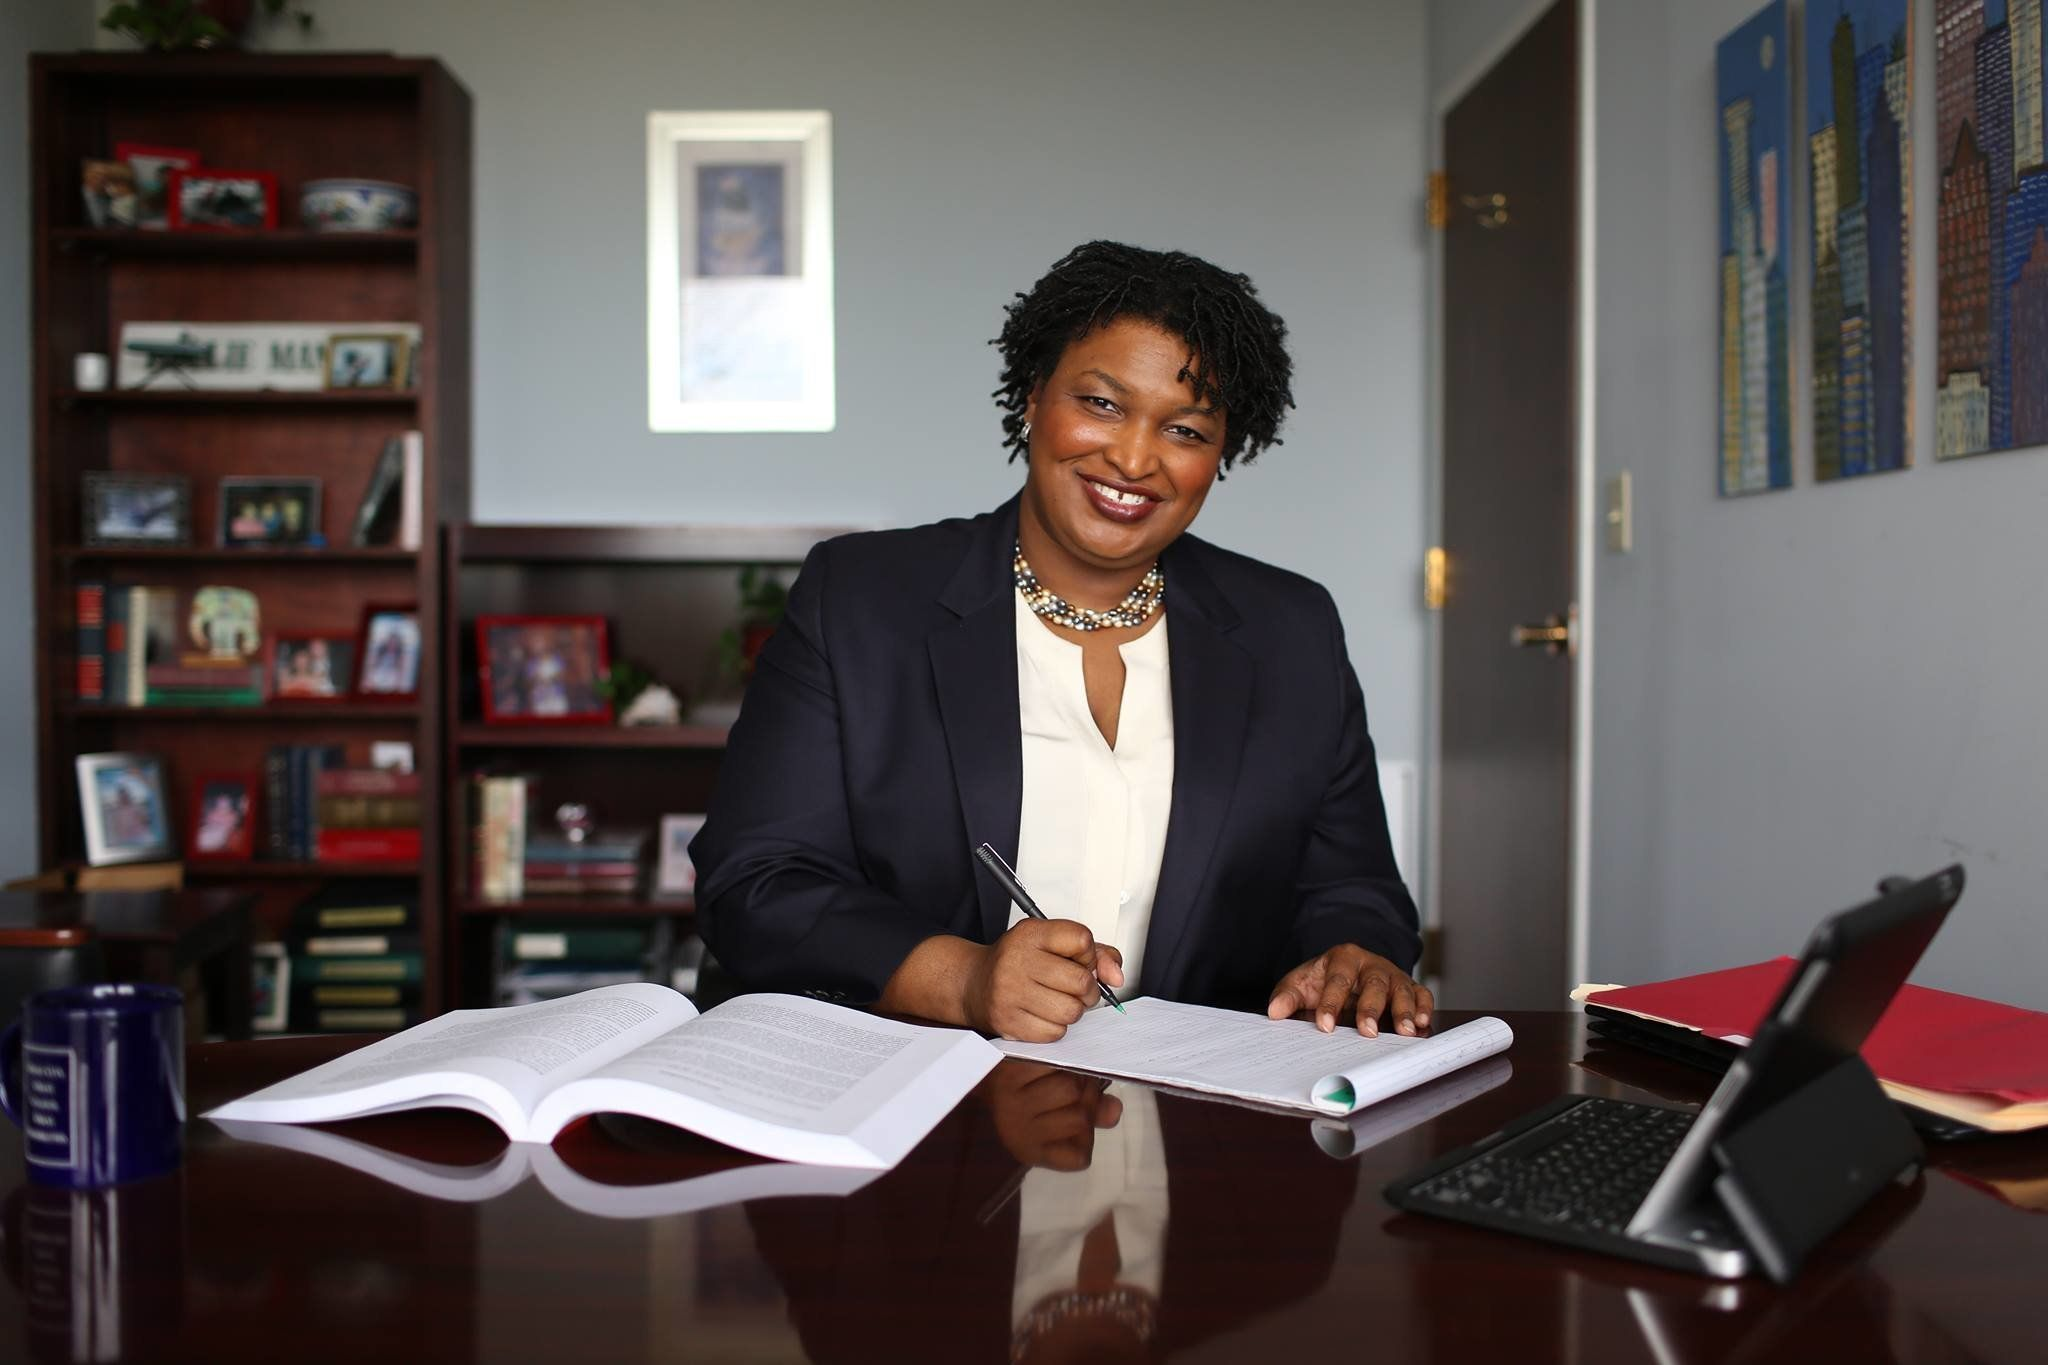 Former Georgia House Democratic Leader Stacey Abrams won the Democratic nomination for governor of Georgia